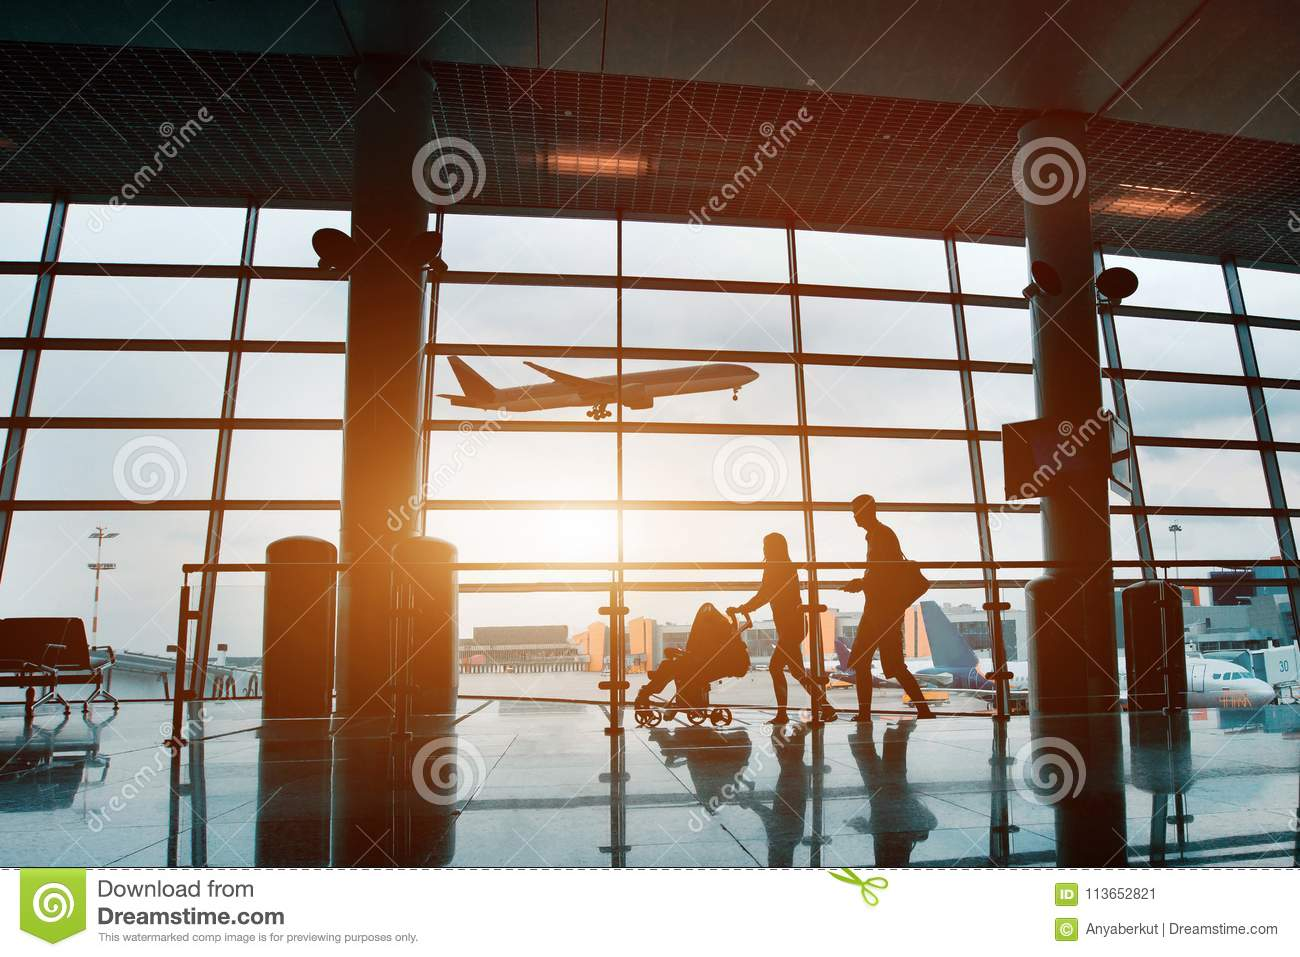 Family traveling with children, silhouette in airport